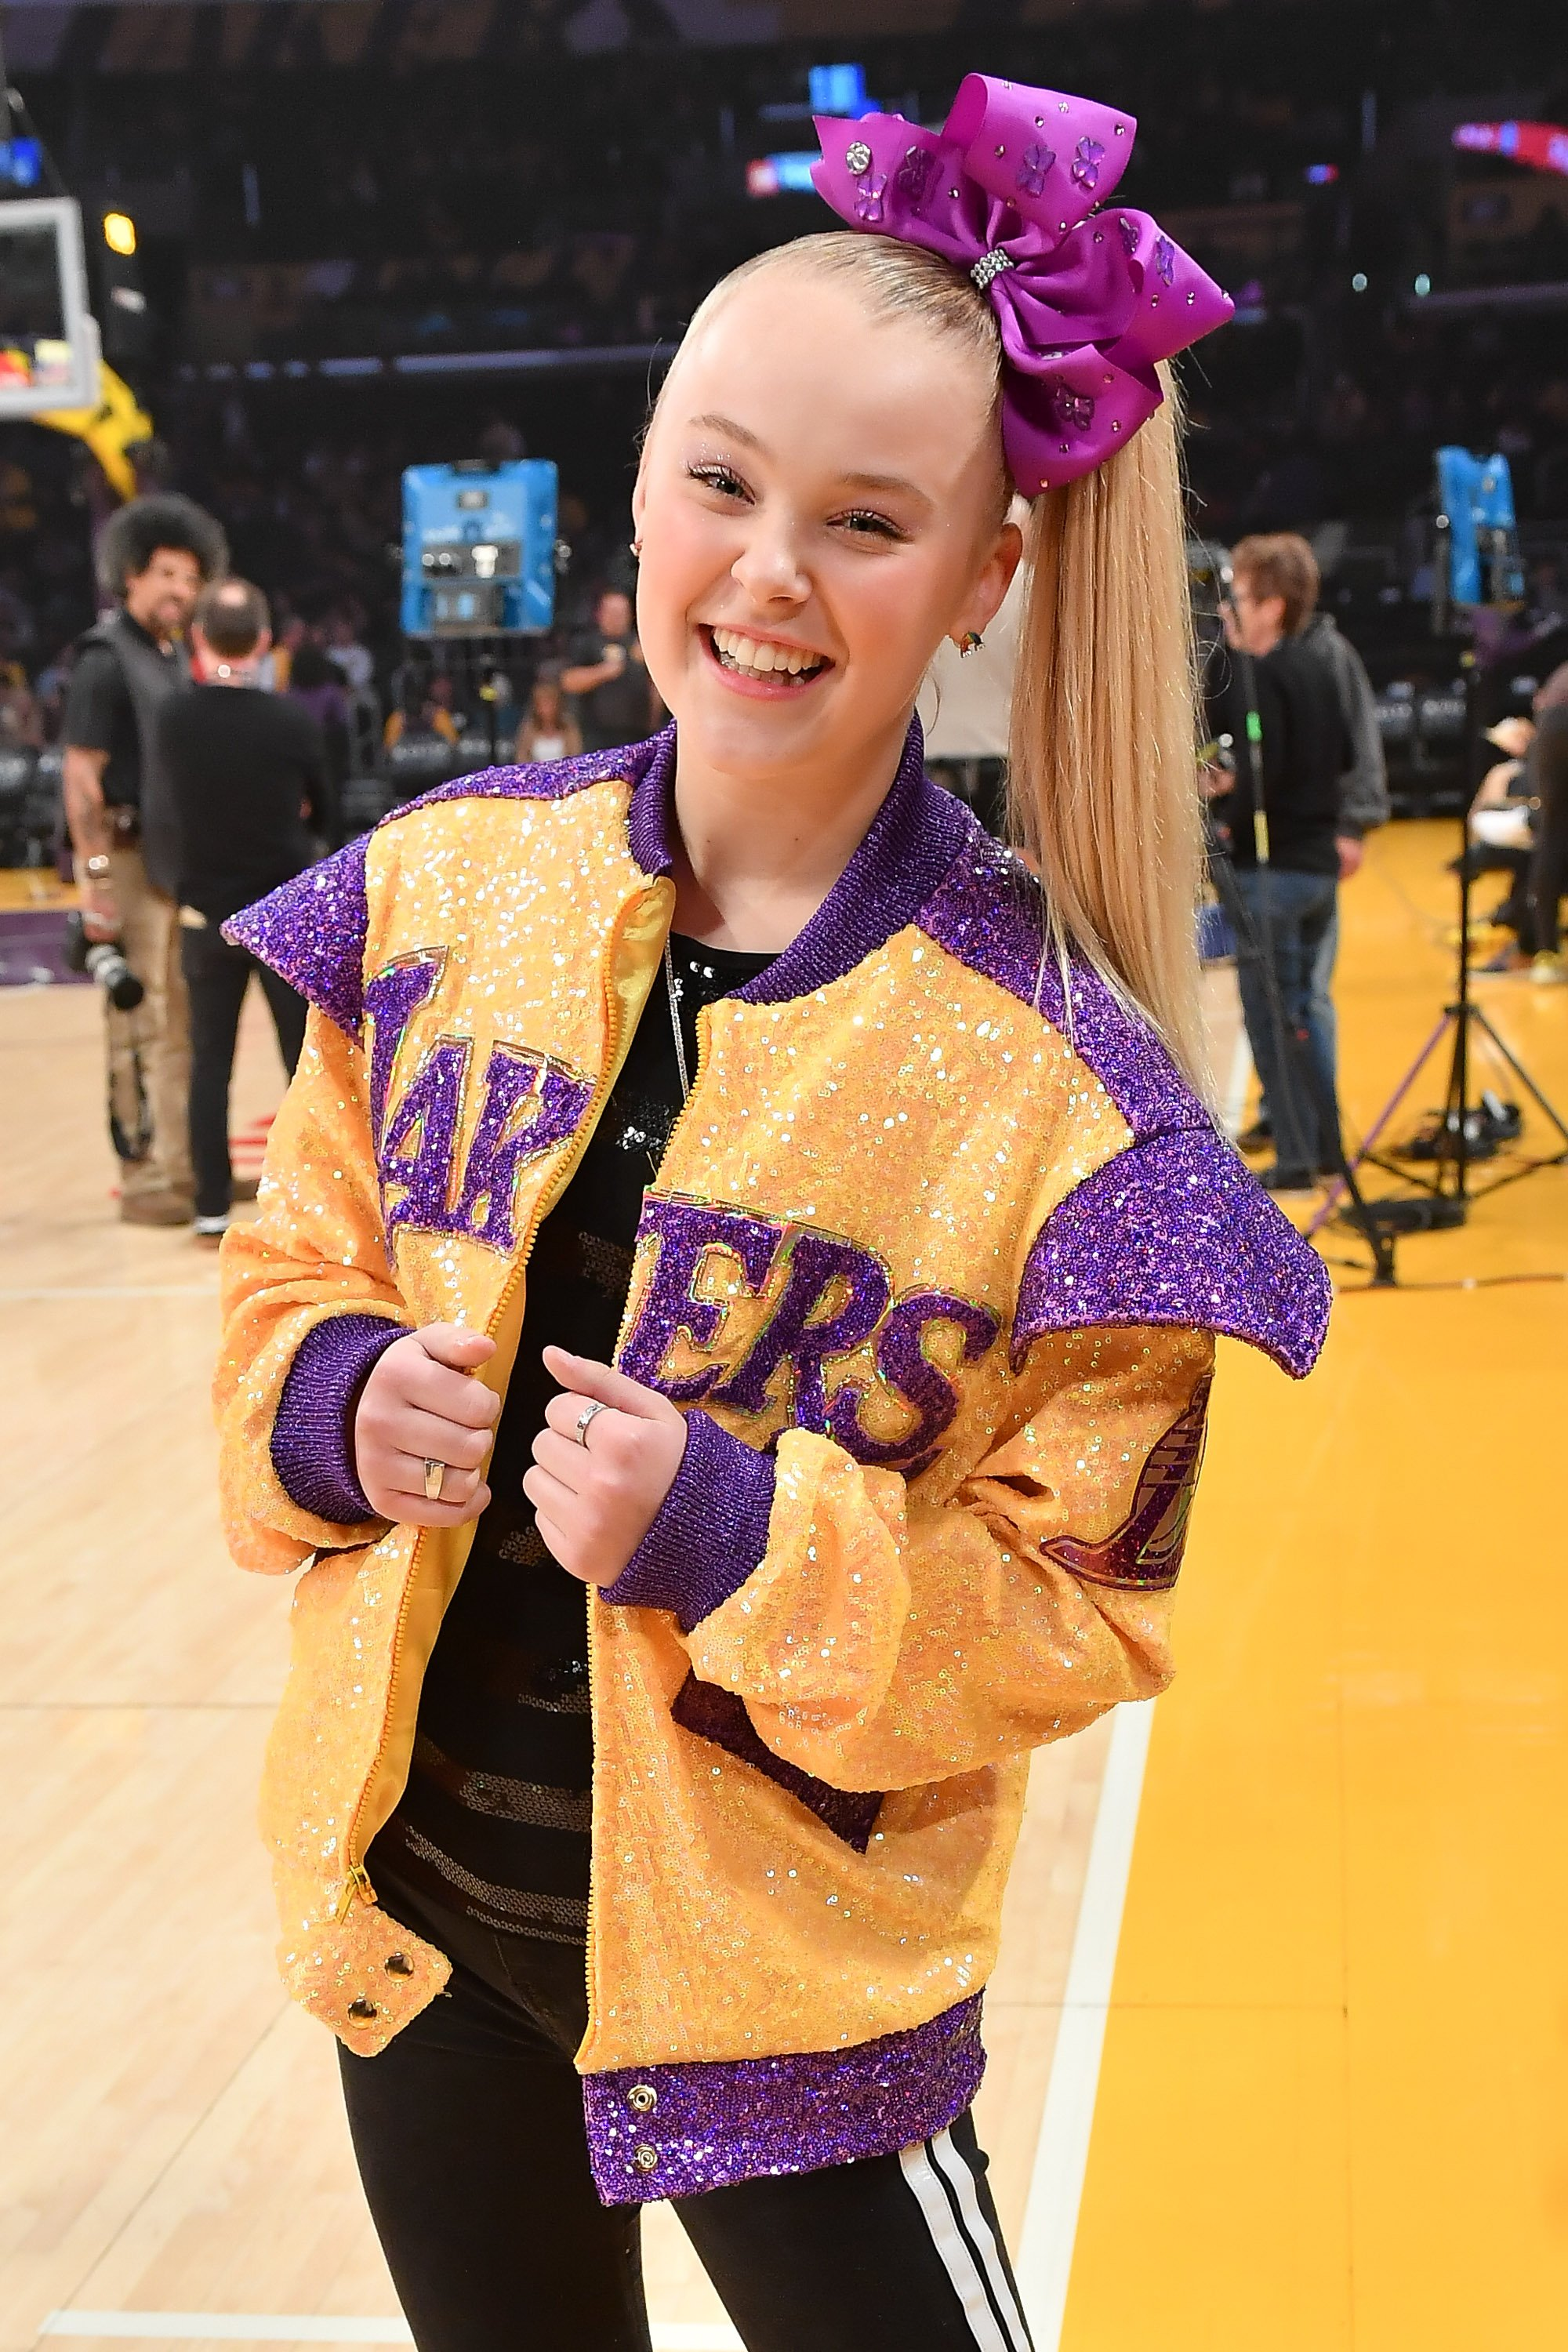 JoJo Siwa attends a basketball game between the Los Angeles Lakers and Phoenix Suns at Staples Center on February 10, 2020 in Los Angeles, California   Photo: Getty Images